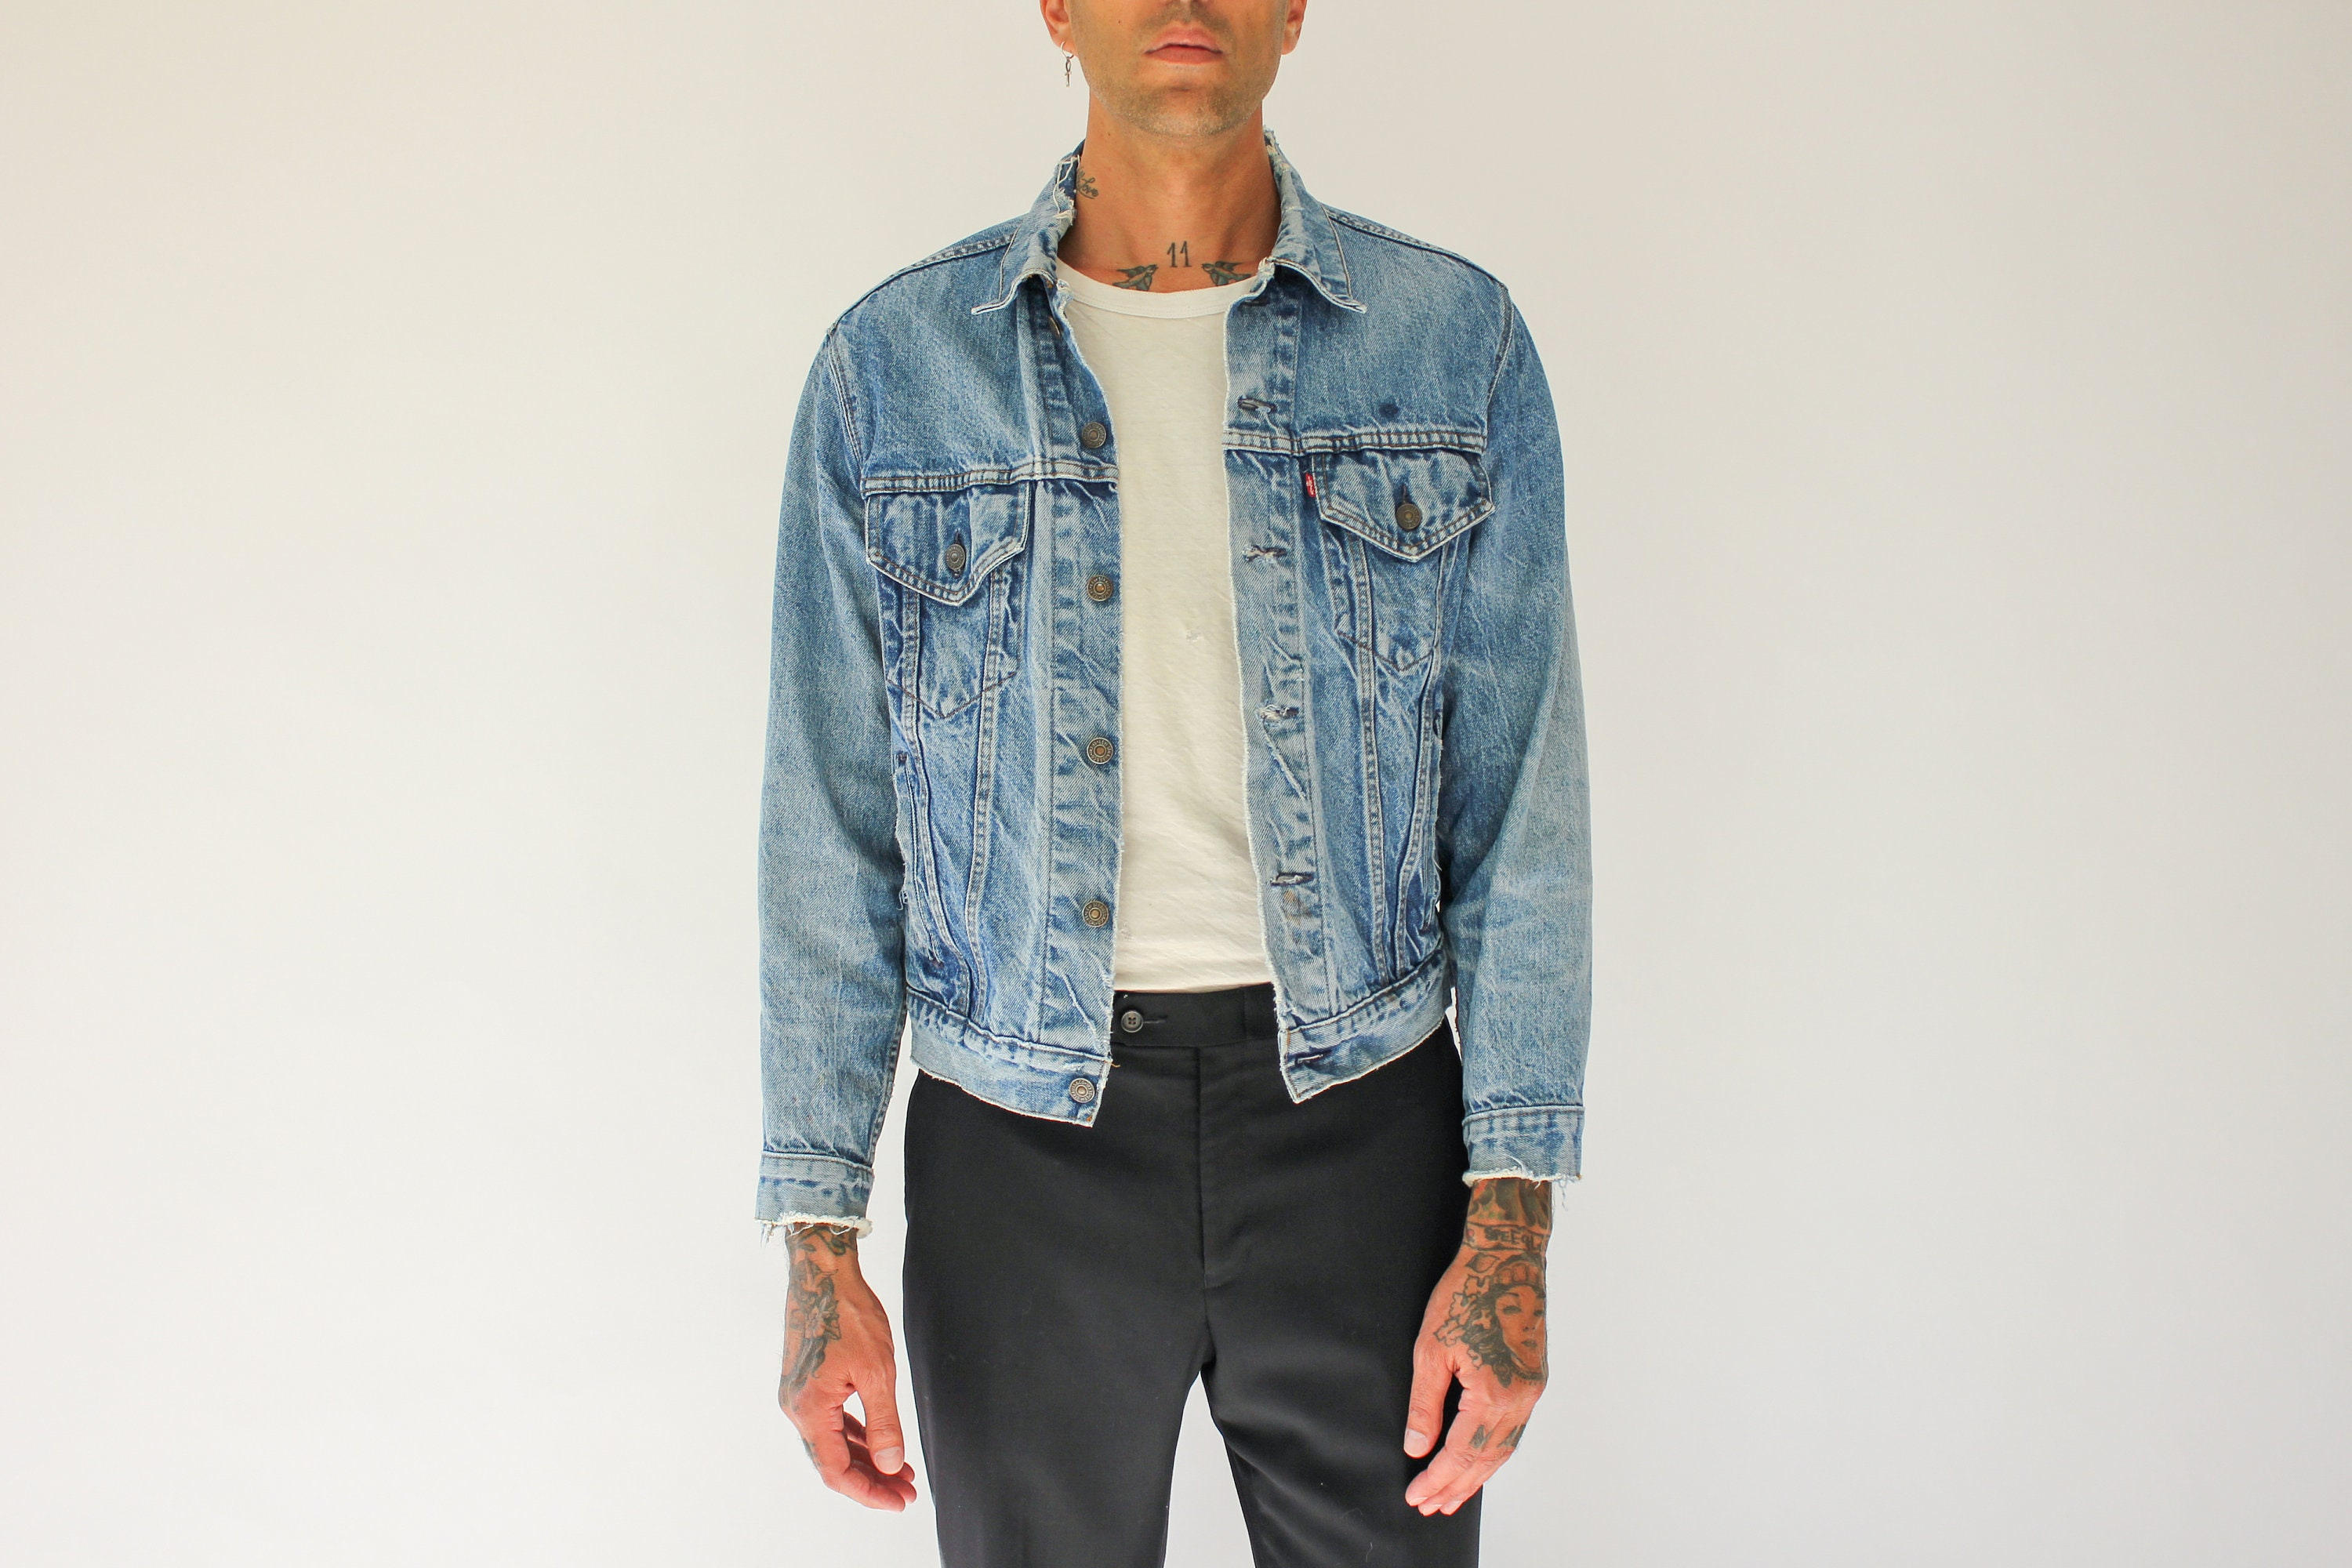 80s Dresses | Casual to Party Dresses Vintage 70S 80S Levis Perfectly Destroyed Denim Trucker Jacket  Made in The Usa 1970S 1980S Mens Medium Wash $22.95 AT vintagedancer.com